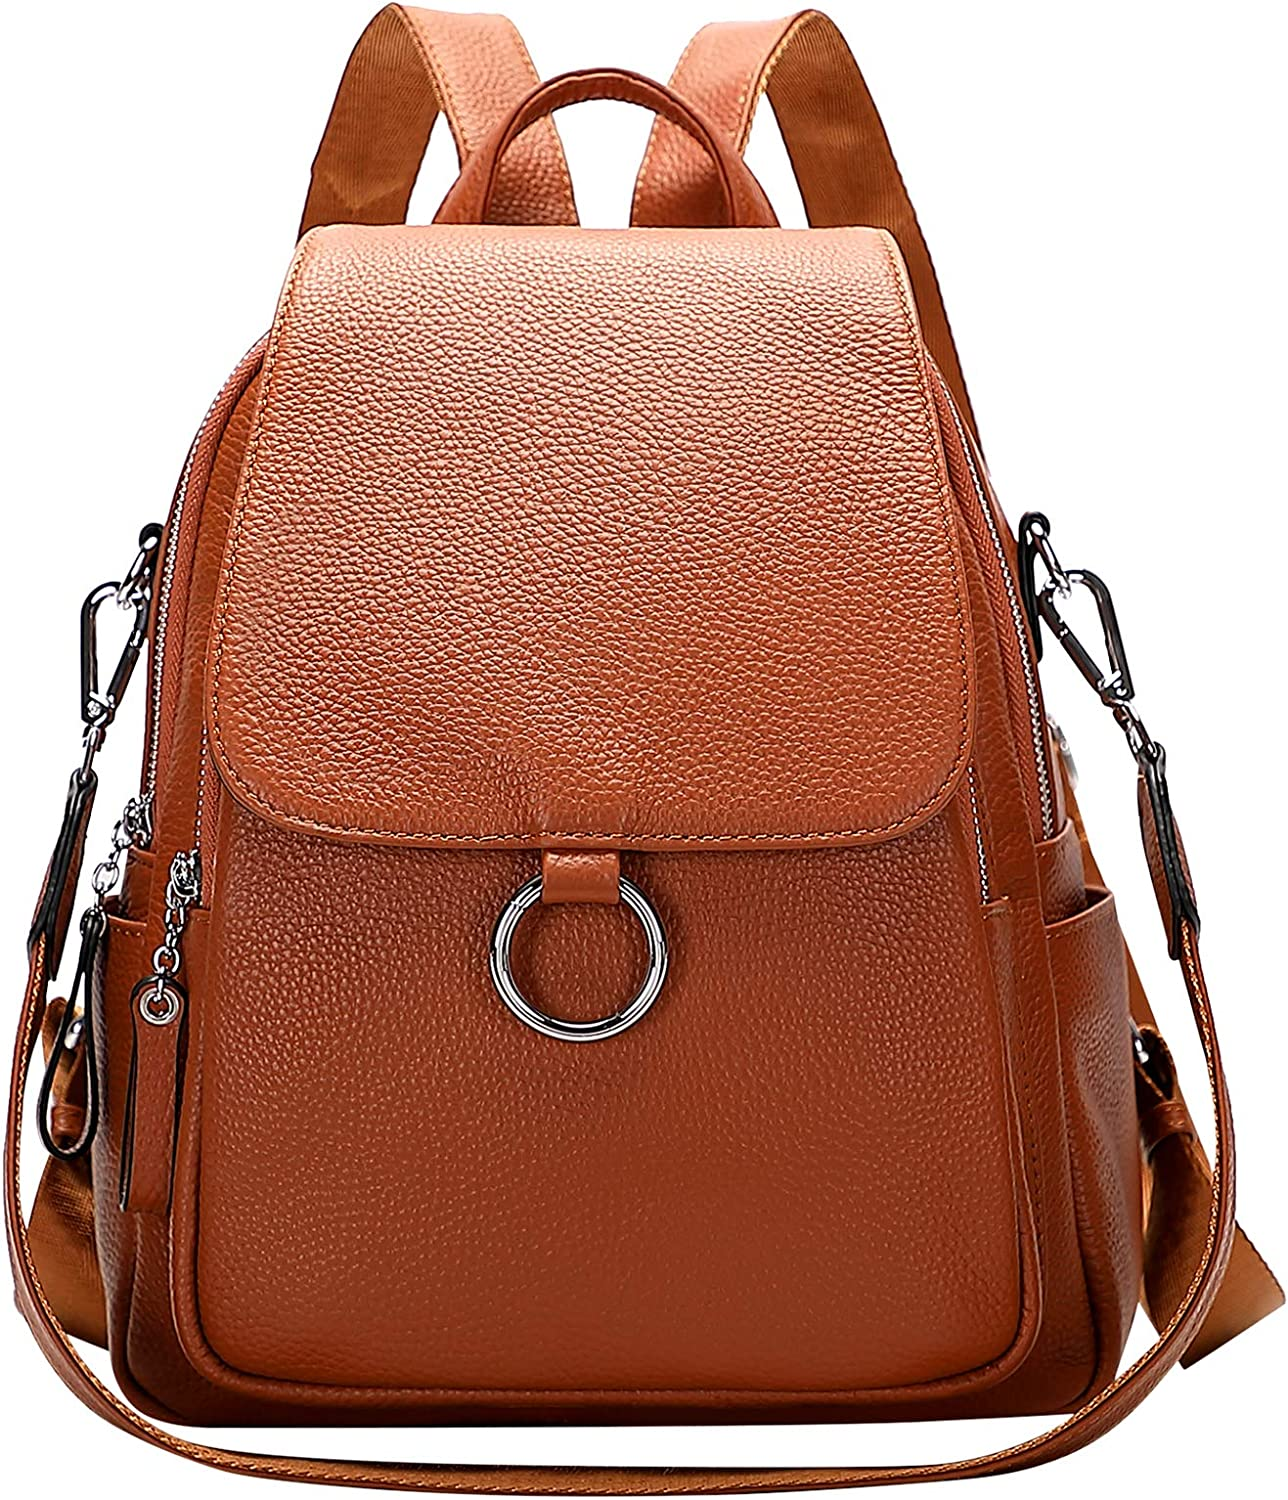 ALTOSY Women Leather Backpack Purse S Convertible Ladies Max 68% OFF 55% OFF Fashion